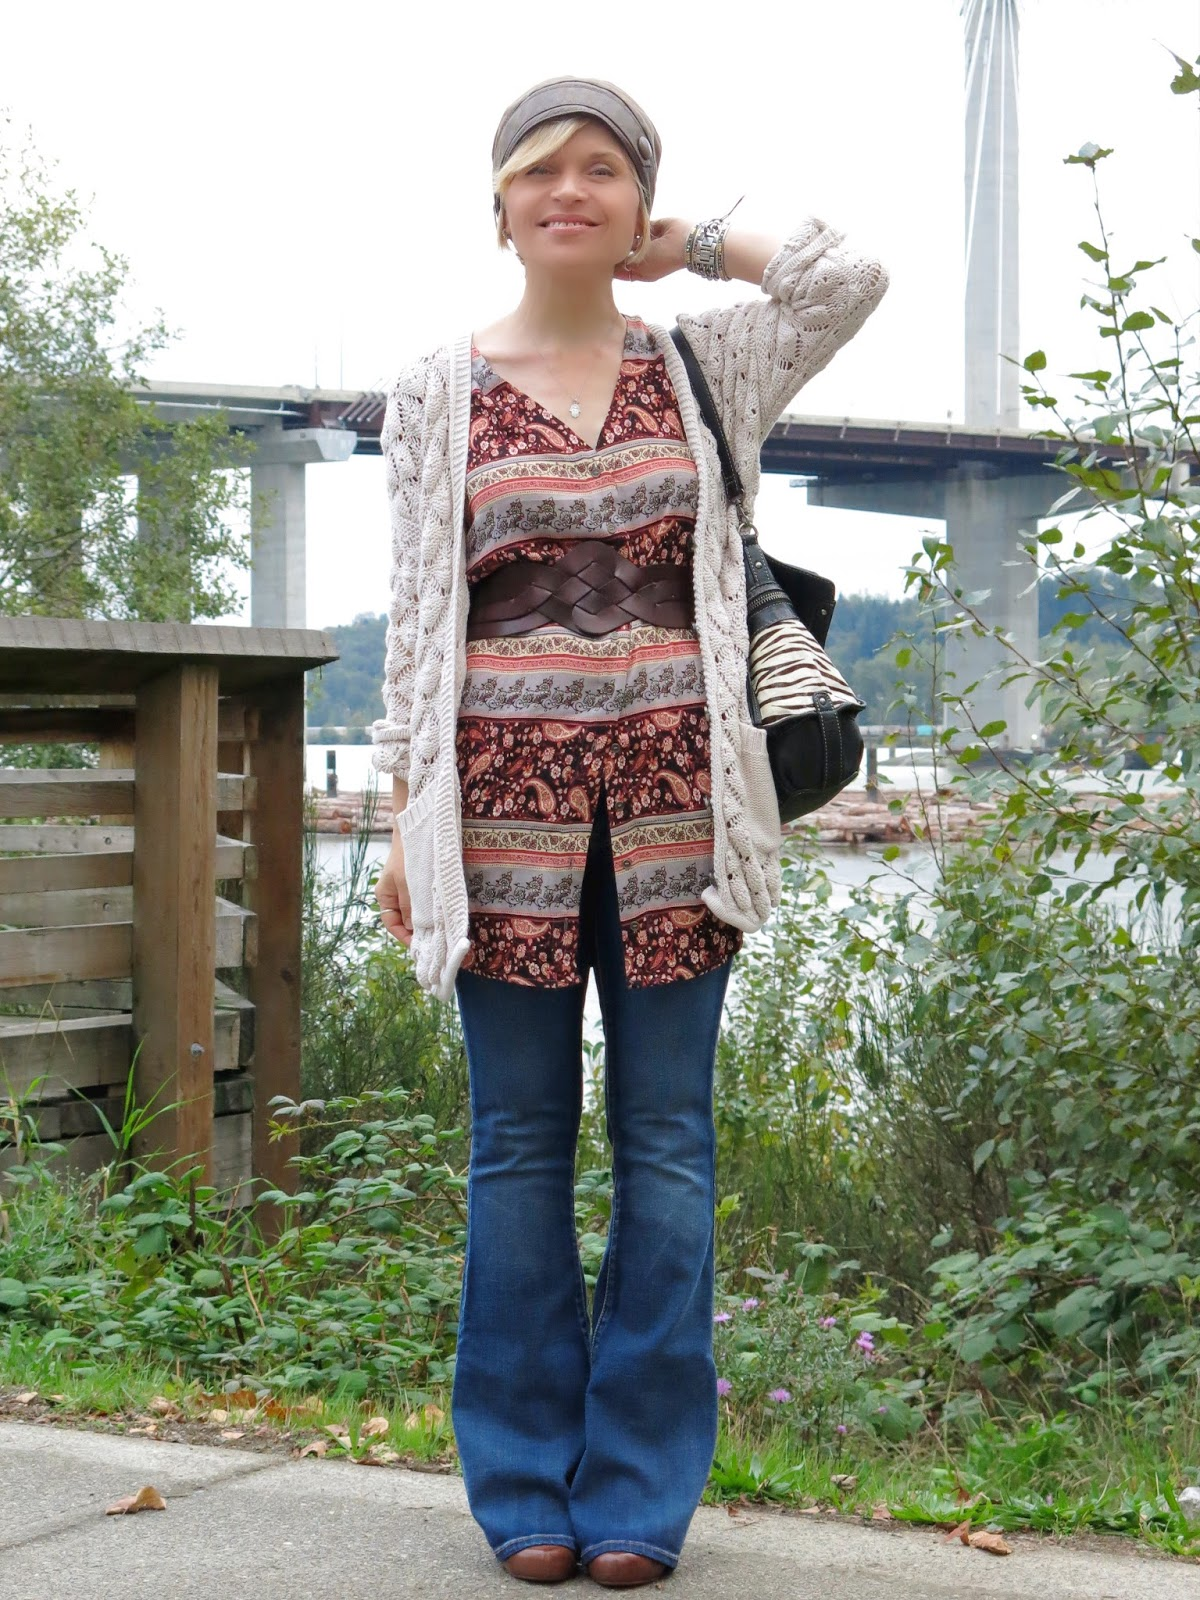 styling flare jeans with a belted floral tunic, grandpa cardigan, and leather beanie